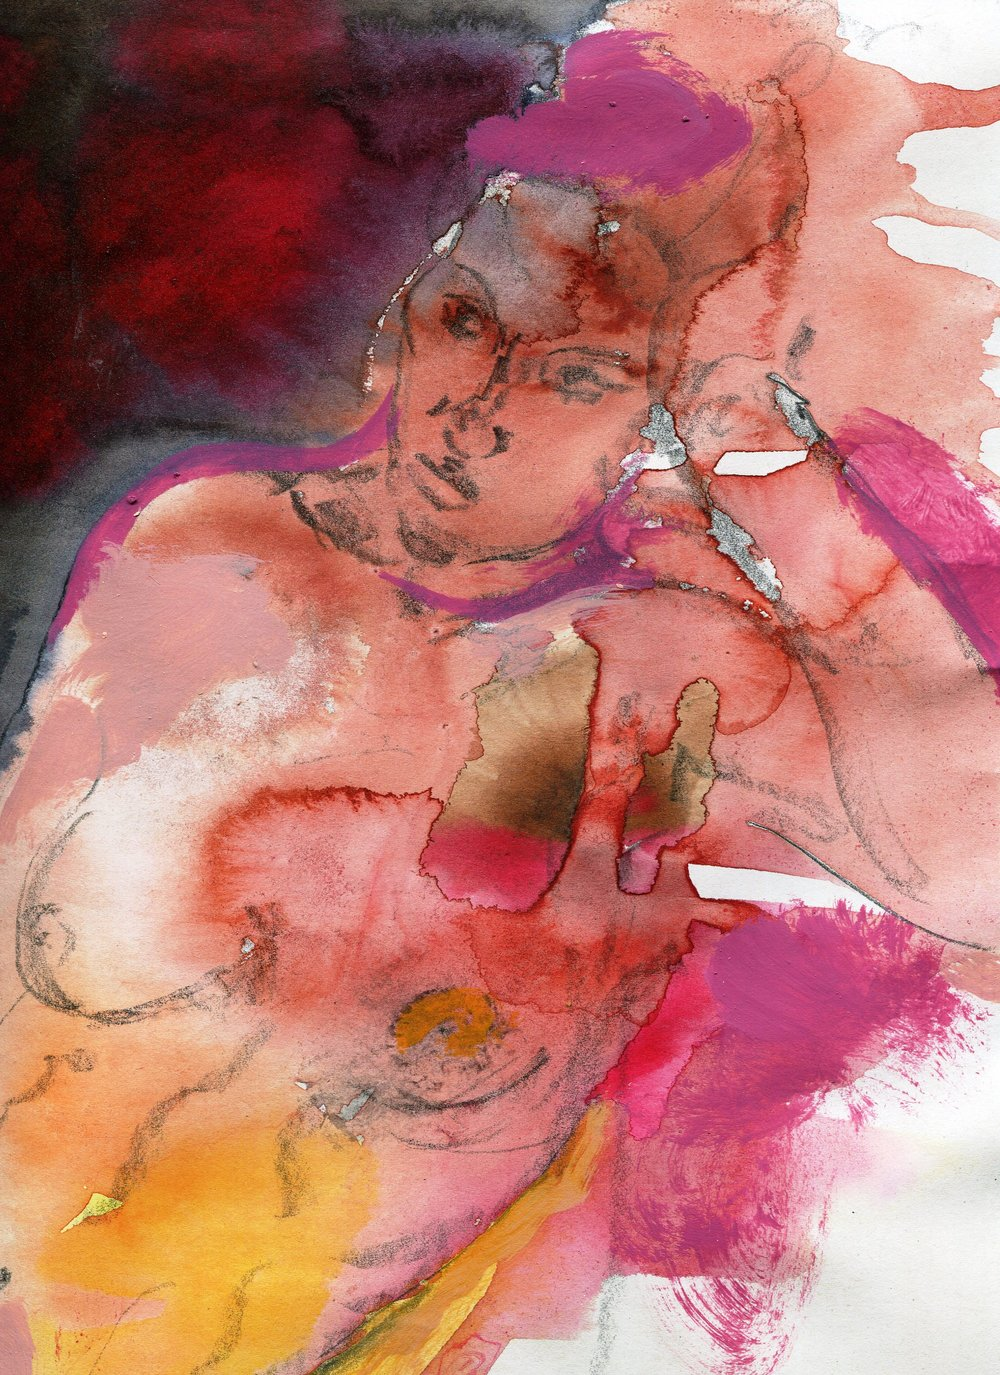 87B PENNY FORDER, STAIN, MIXED MEDIA ON PAPER